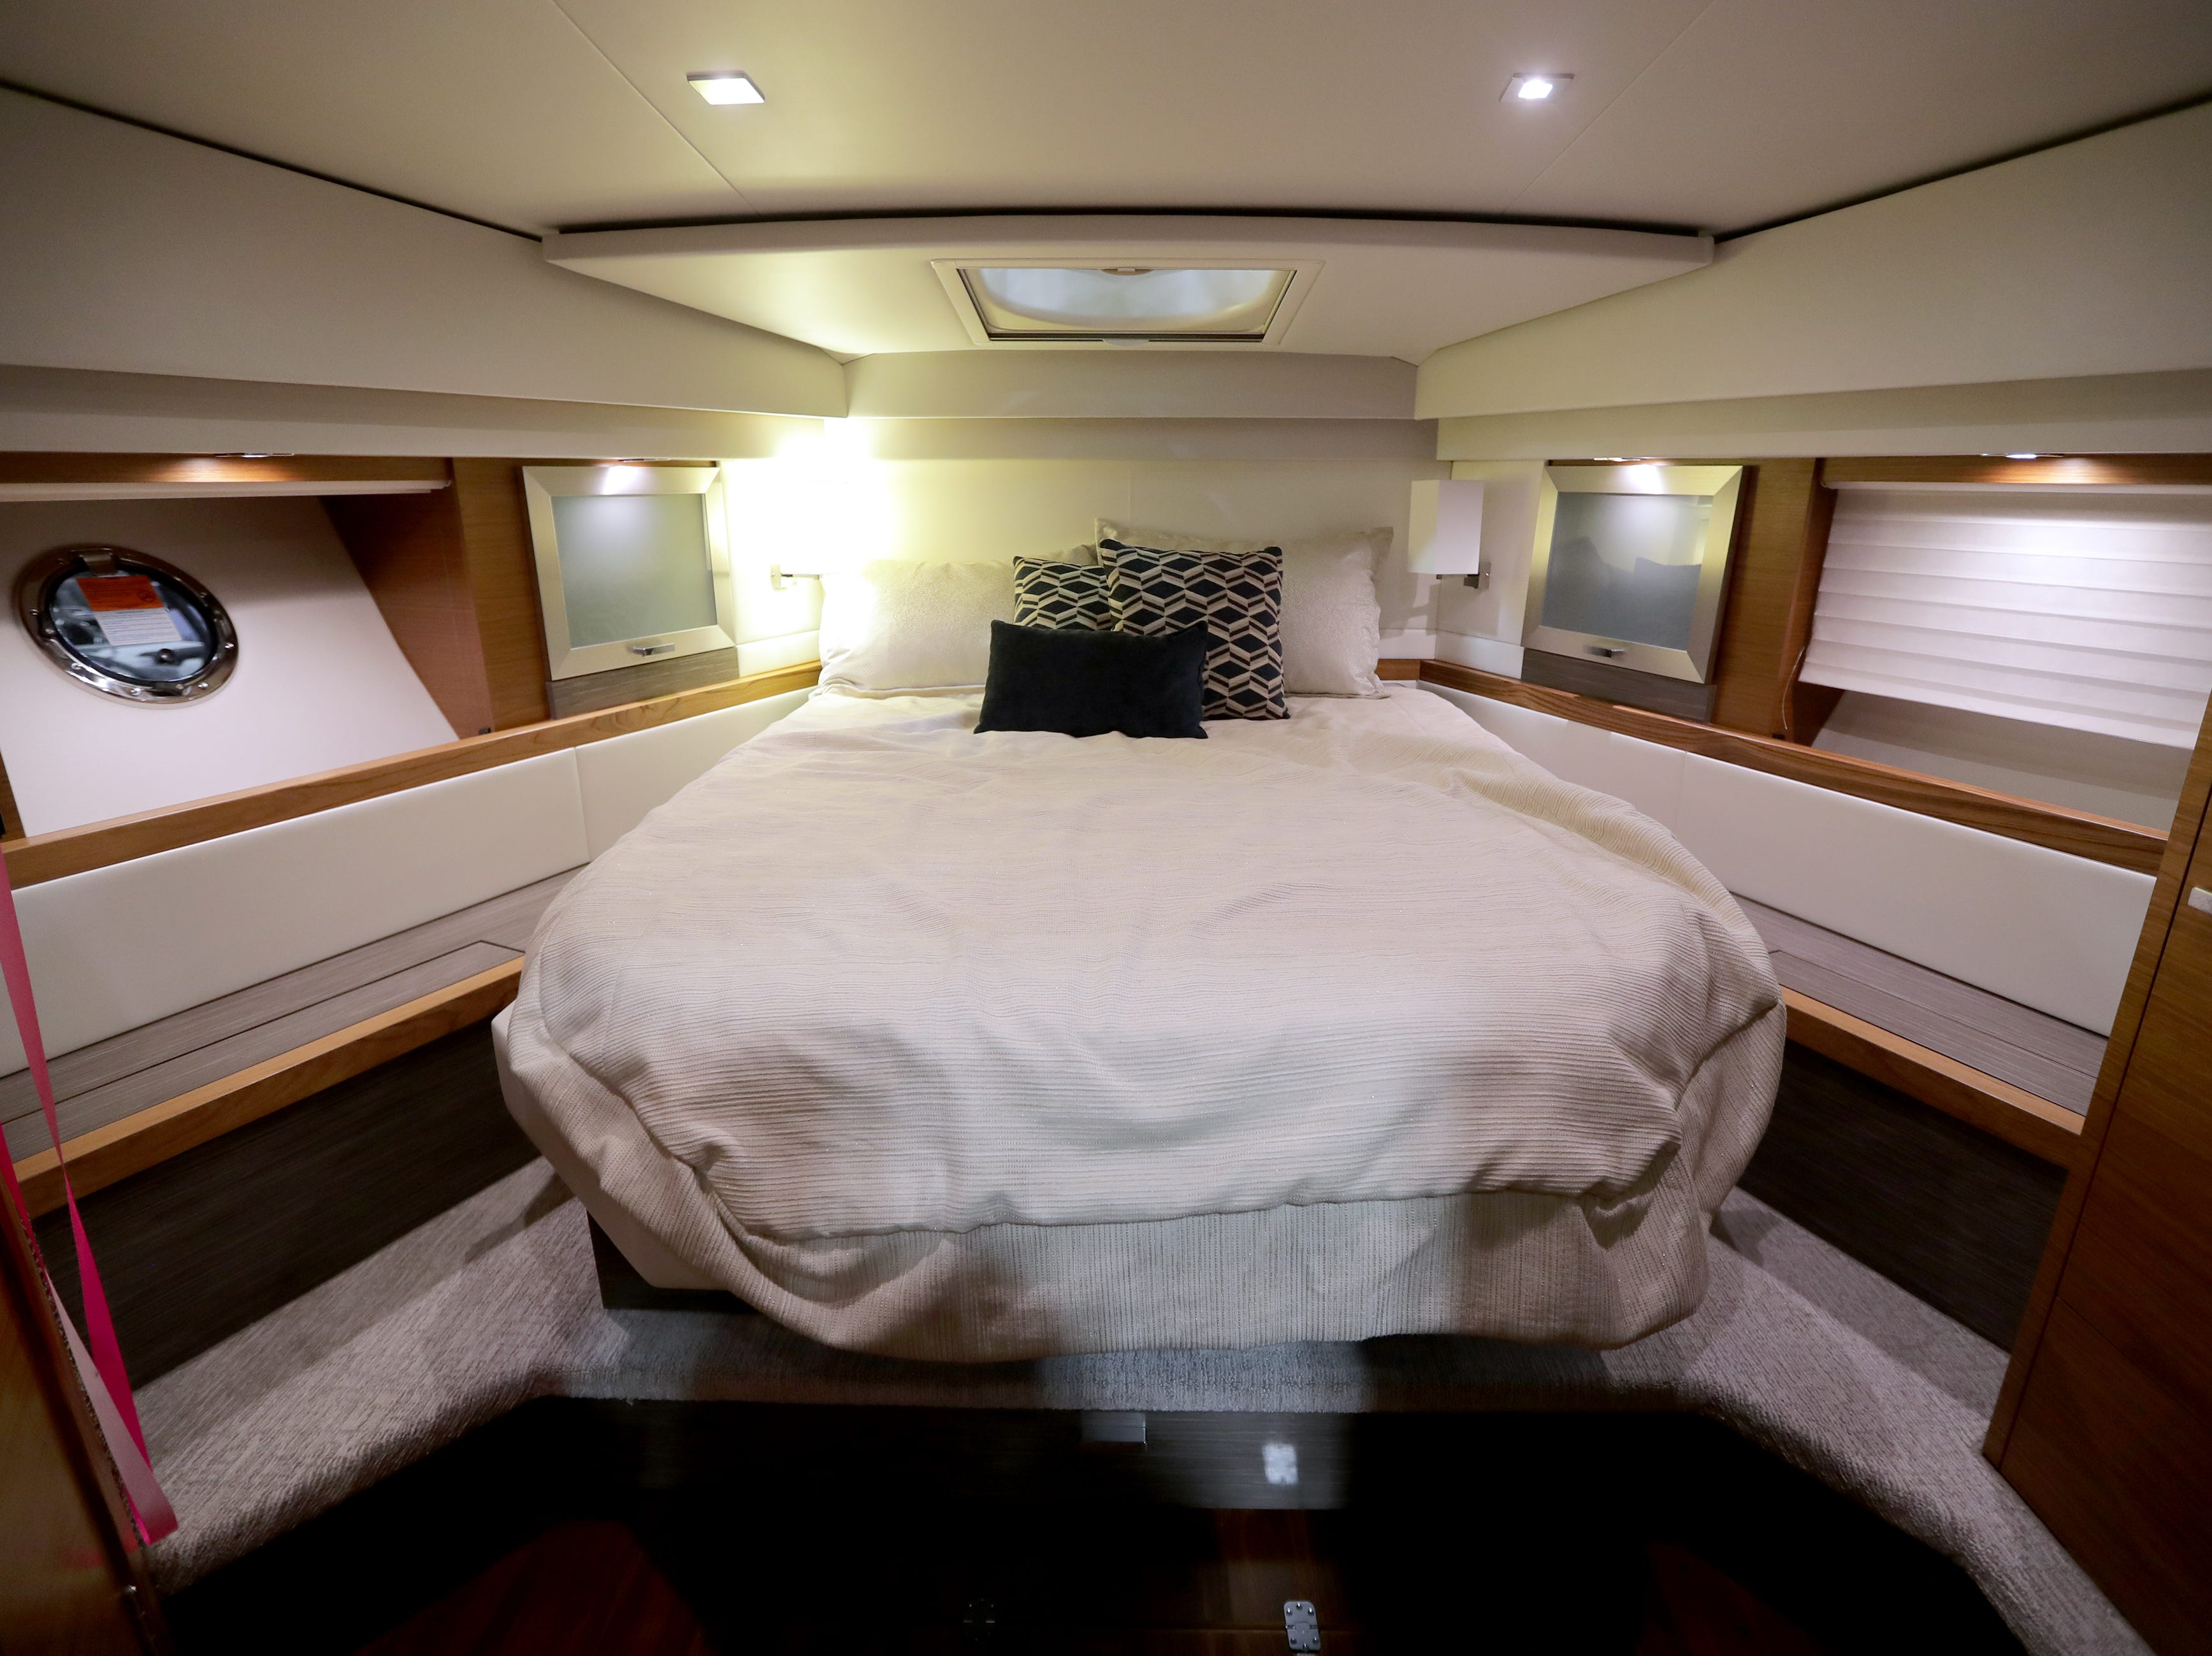 The master bedroom in a 2019 44-foot Tiara yacht, which lists for $1,205,682.